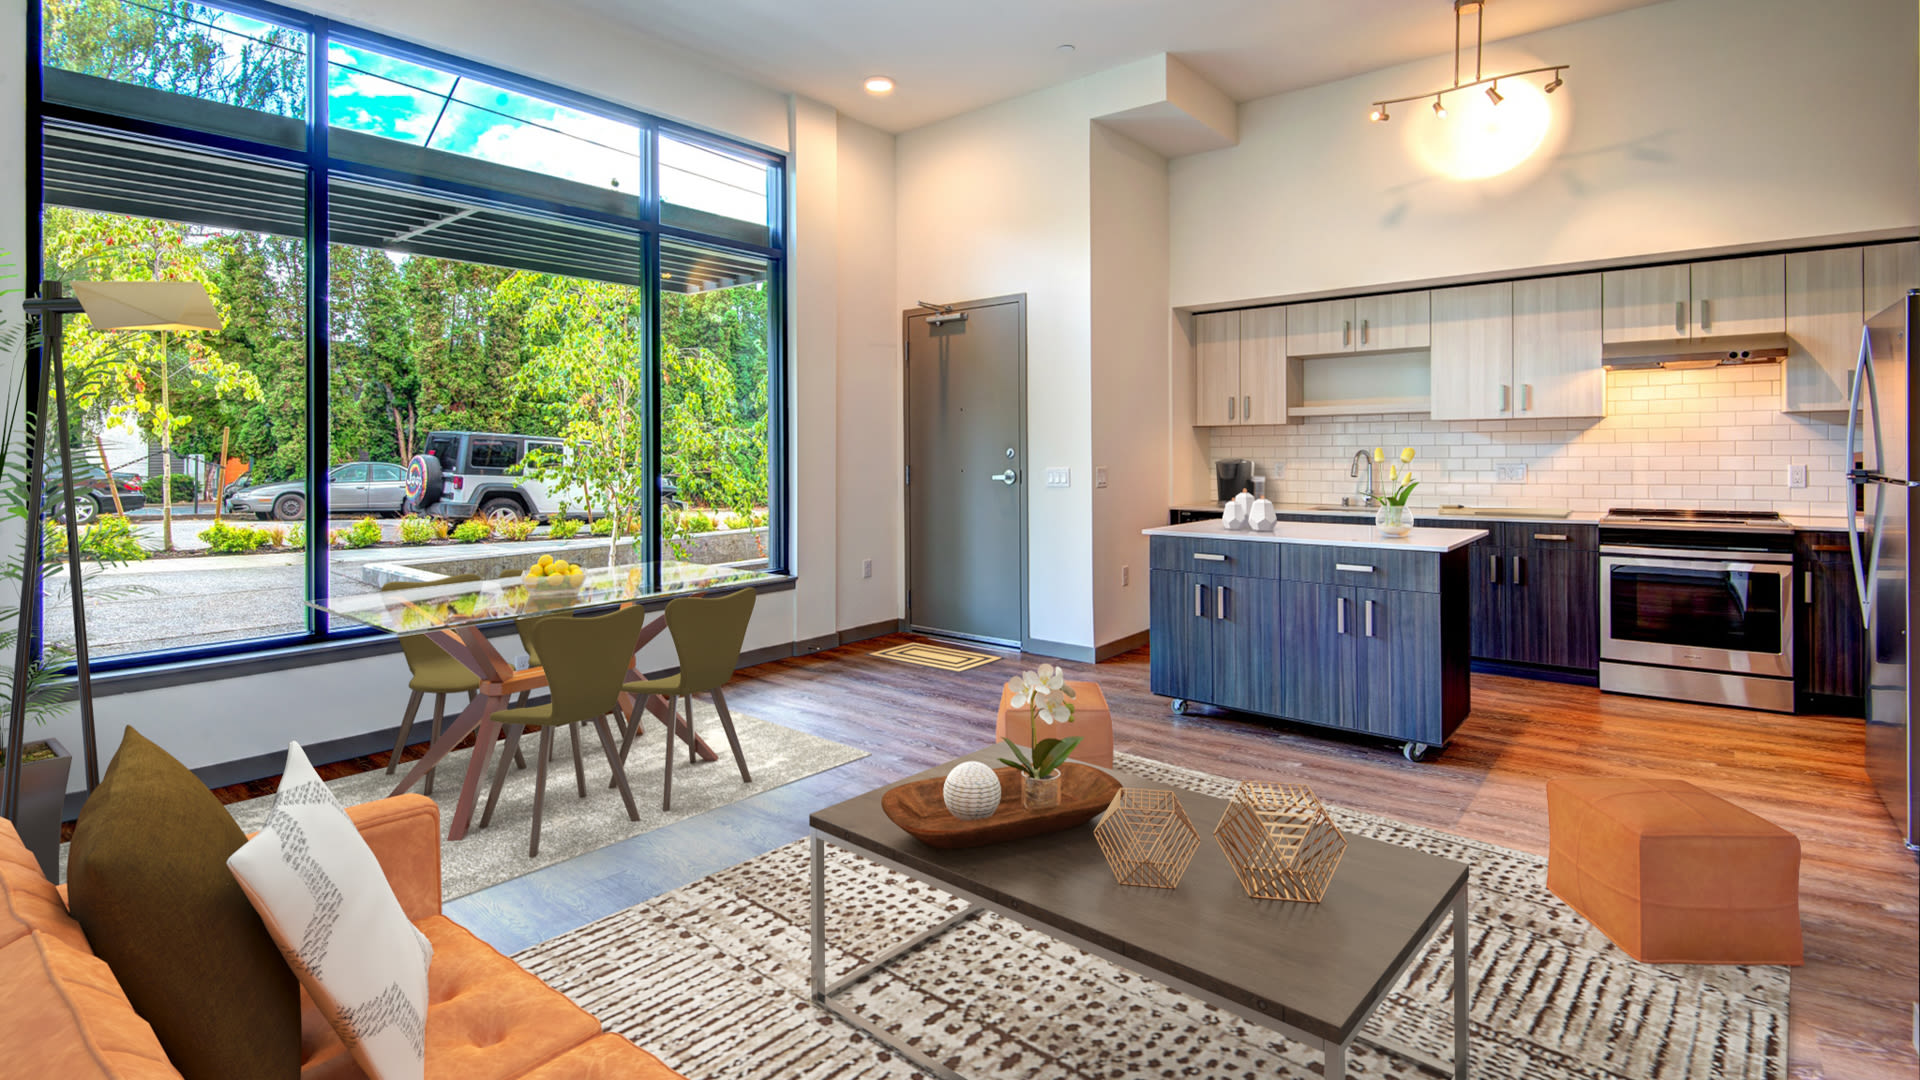 Lane Apartments - Kitchen and Living Room with Hard Surface Flooring